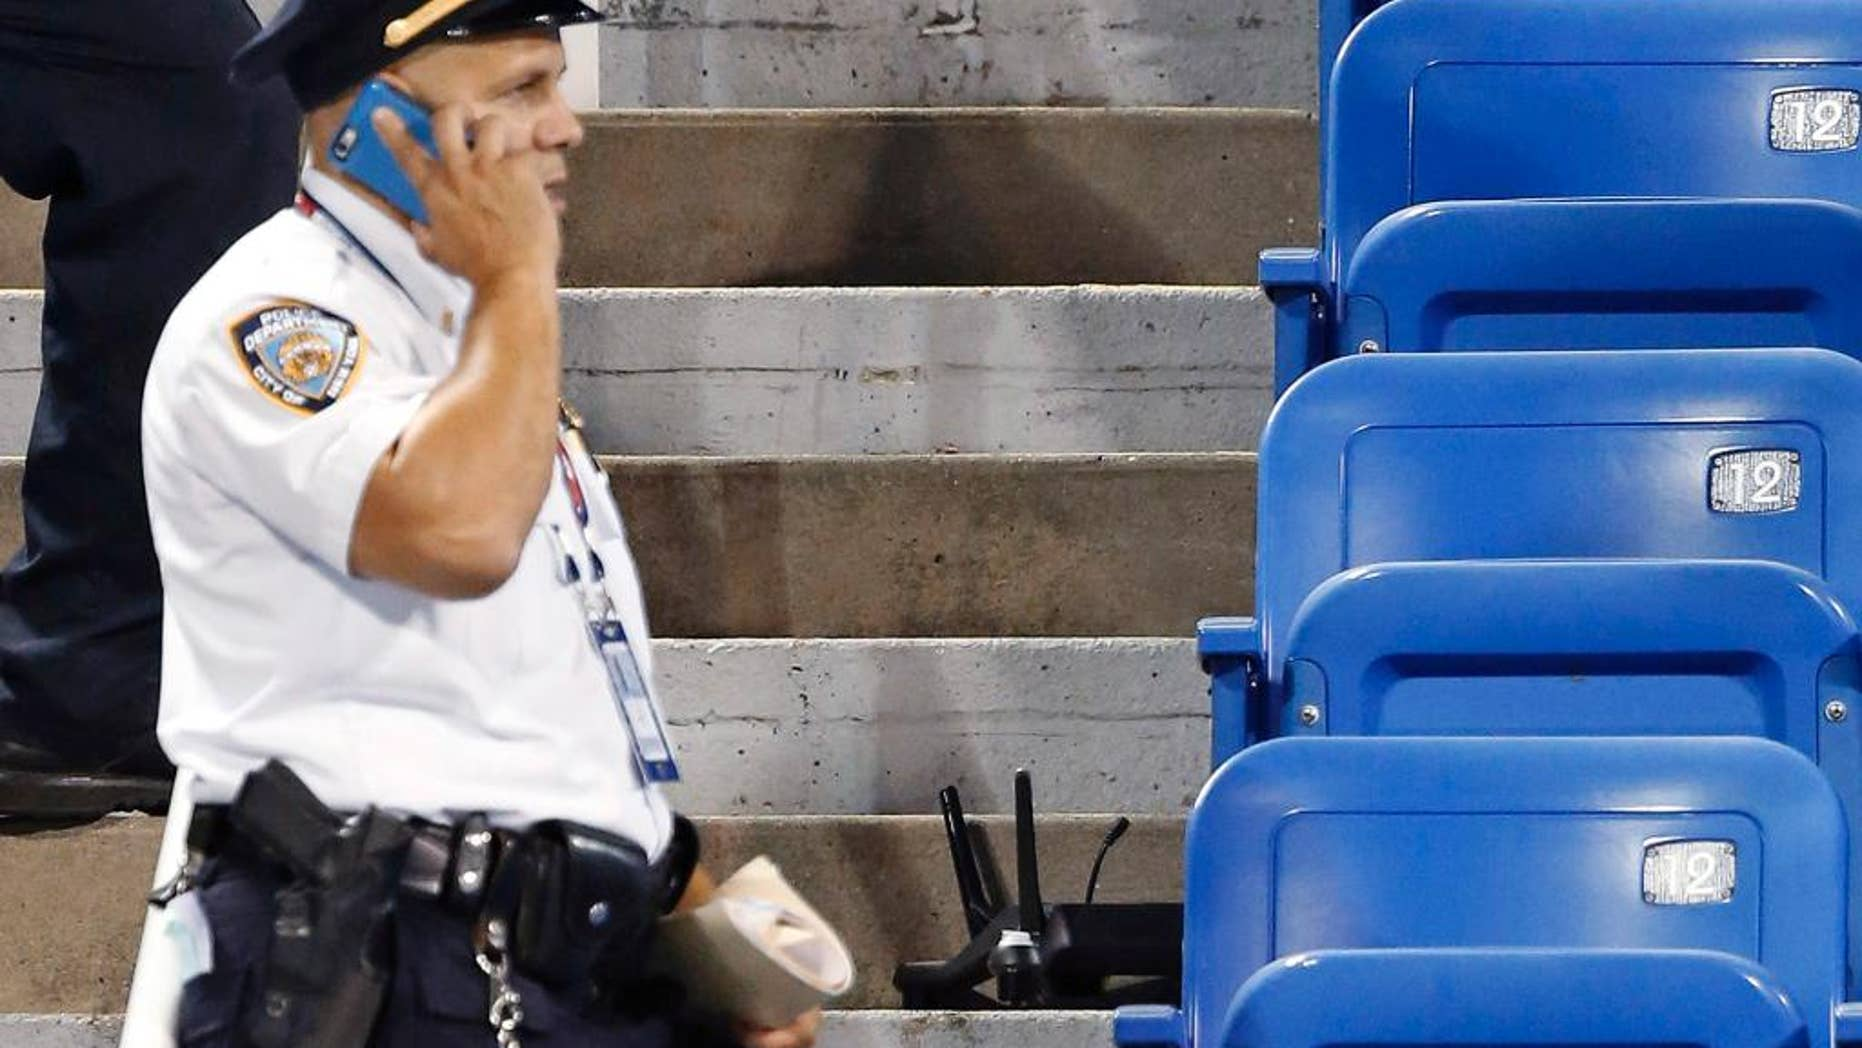 In this photo taken on Thursday, Sept. 3, 2015, police officers investigate the southwest corner of Louis Armstrong Stadium after a drone flew over the court, buzzing the players during a match between Flavia Pennetta, of Italy, and Monica Niculescu, of Romania, during the second round of the U.S. Open tennis tournament in New York. The drone crash-landed in the seats and can be seen to the right of the police officer on his phone. Whether they're crashing into the bleachers or simply hovering above stadiums to get a cool picture of the action down below, drones have become semi-regular guests at the ballparks these days. That has put the federal government, local police forces and security think tanks on alert, trying to catch up to the technology and figure out how to prevent the hard-to-stop devices from doing major damage. (AP Photo/Kathy Willens)